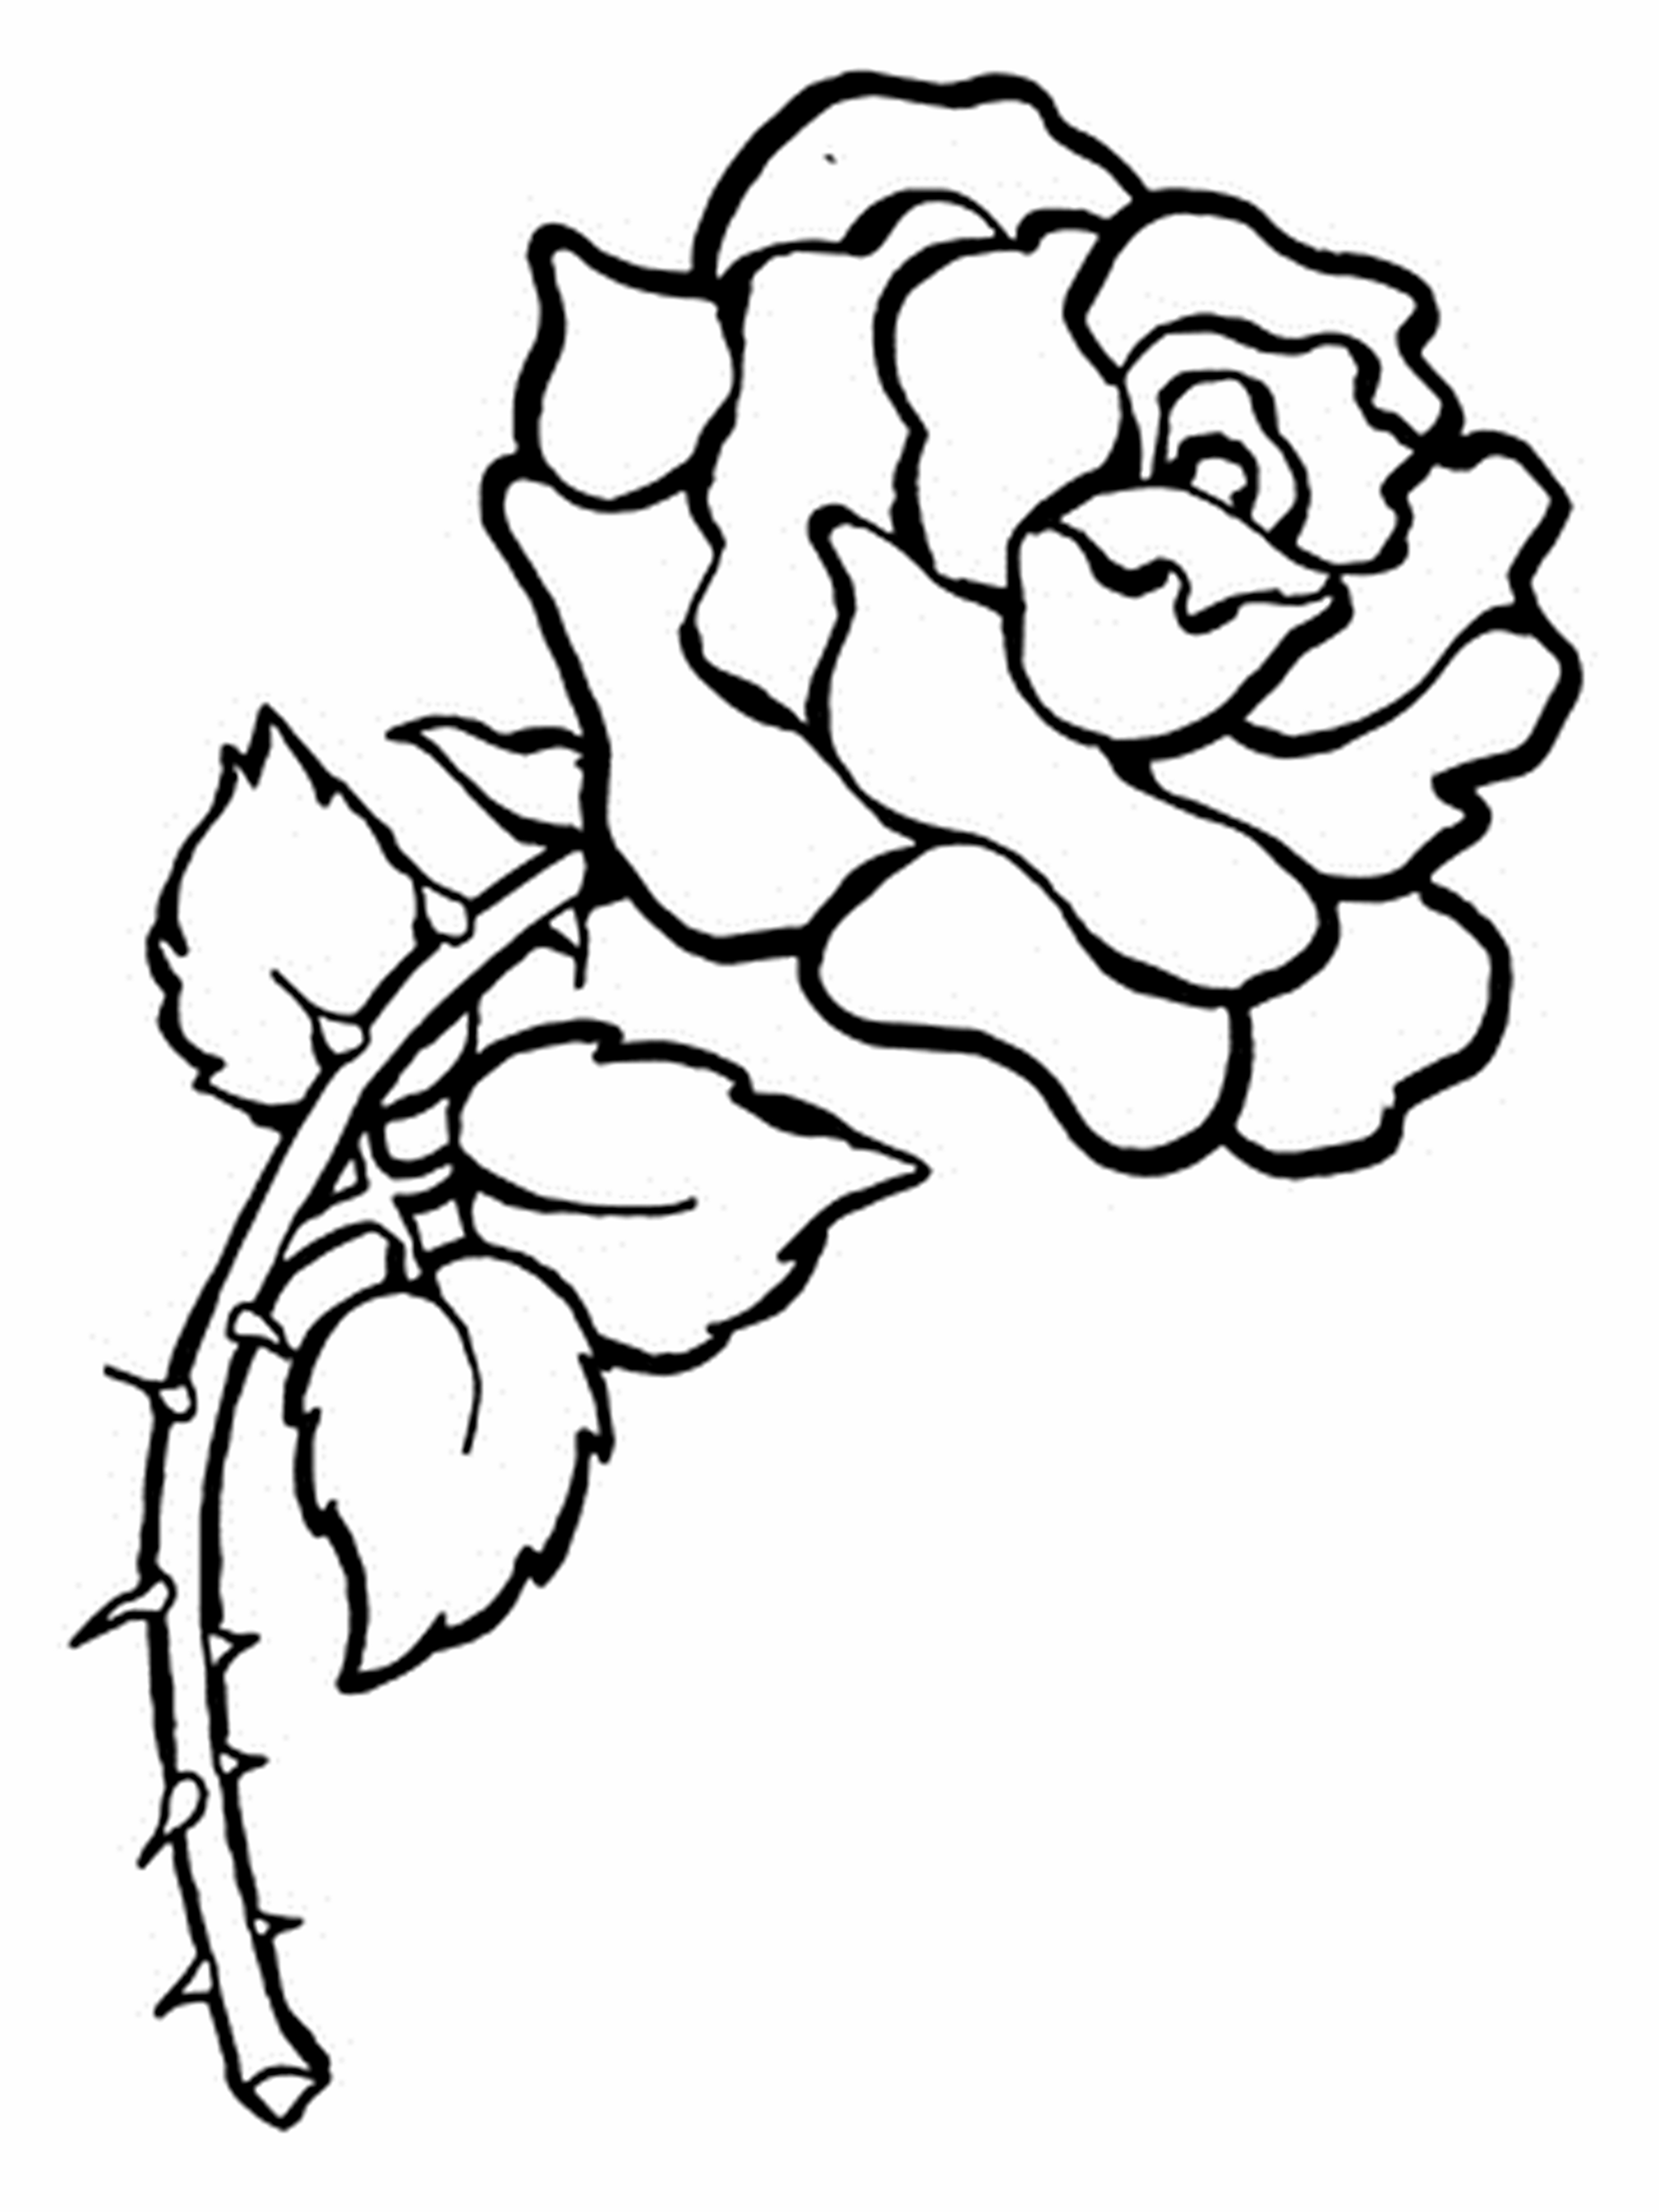 3240x4320 Free Printable Flower Coloring Pages For Kids